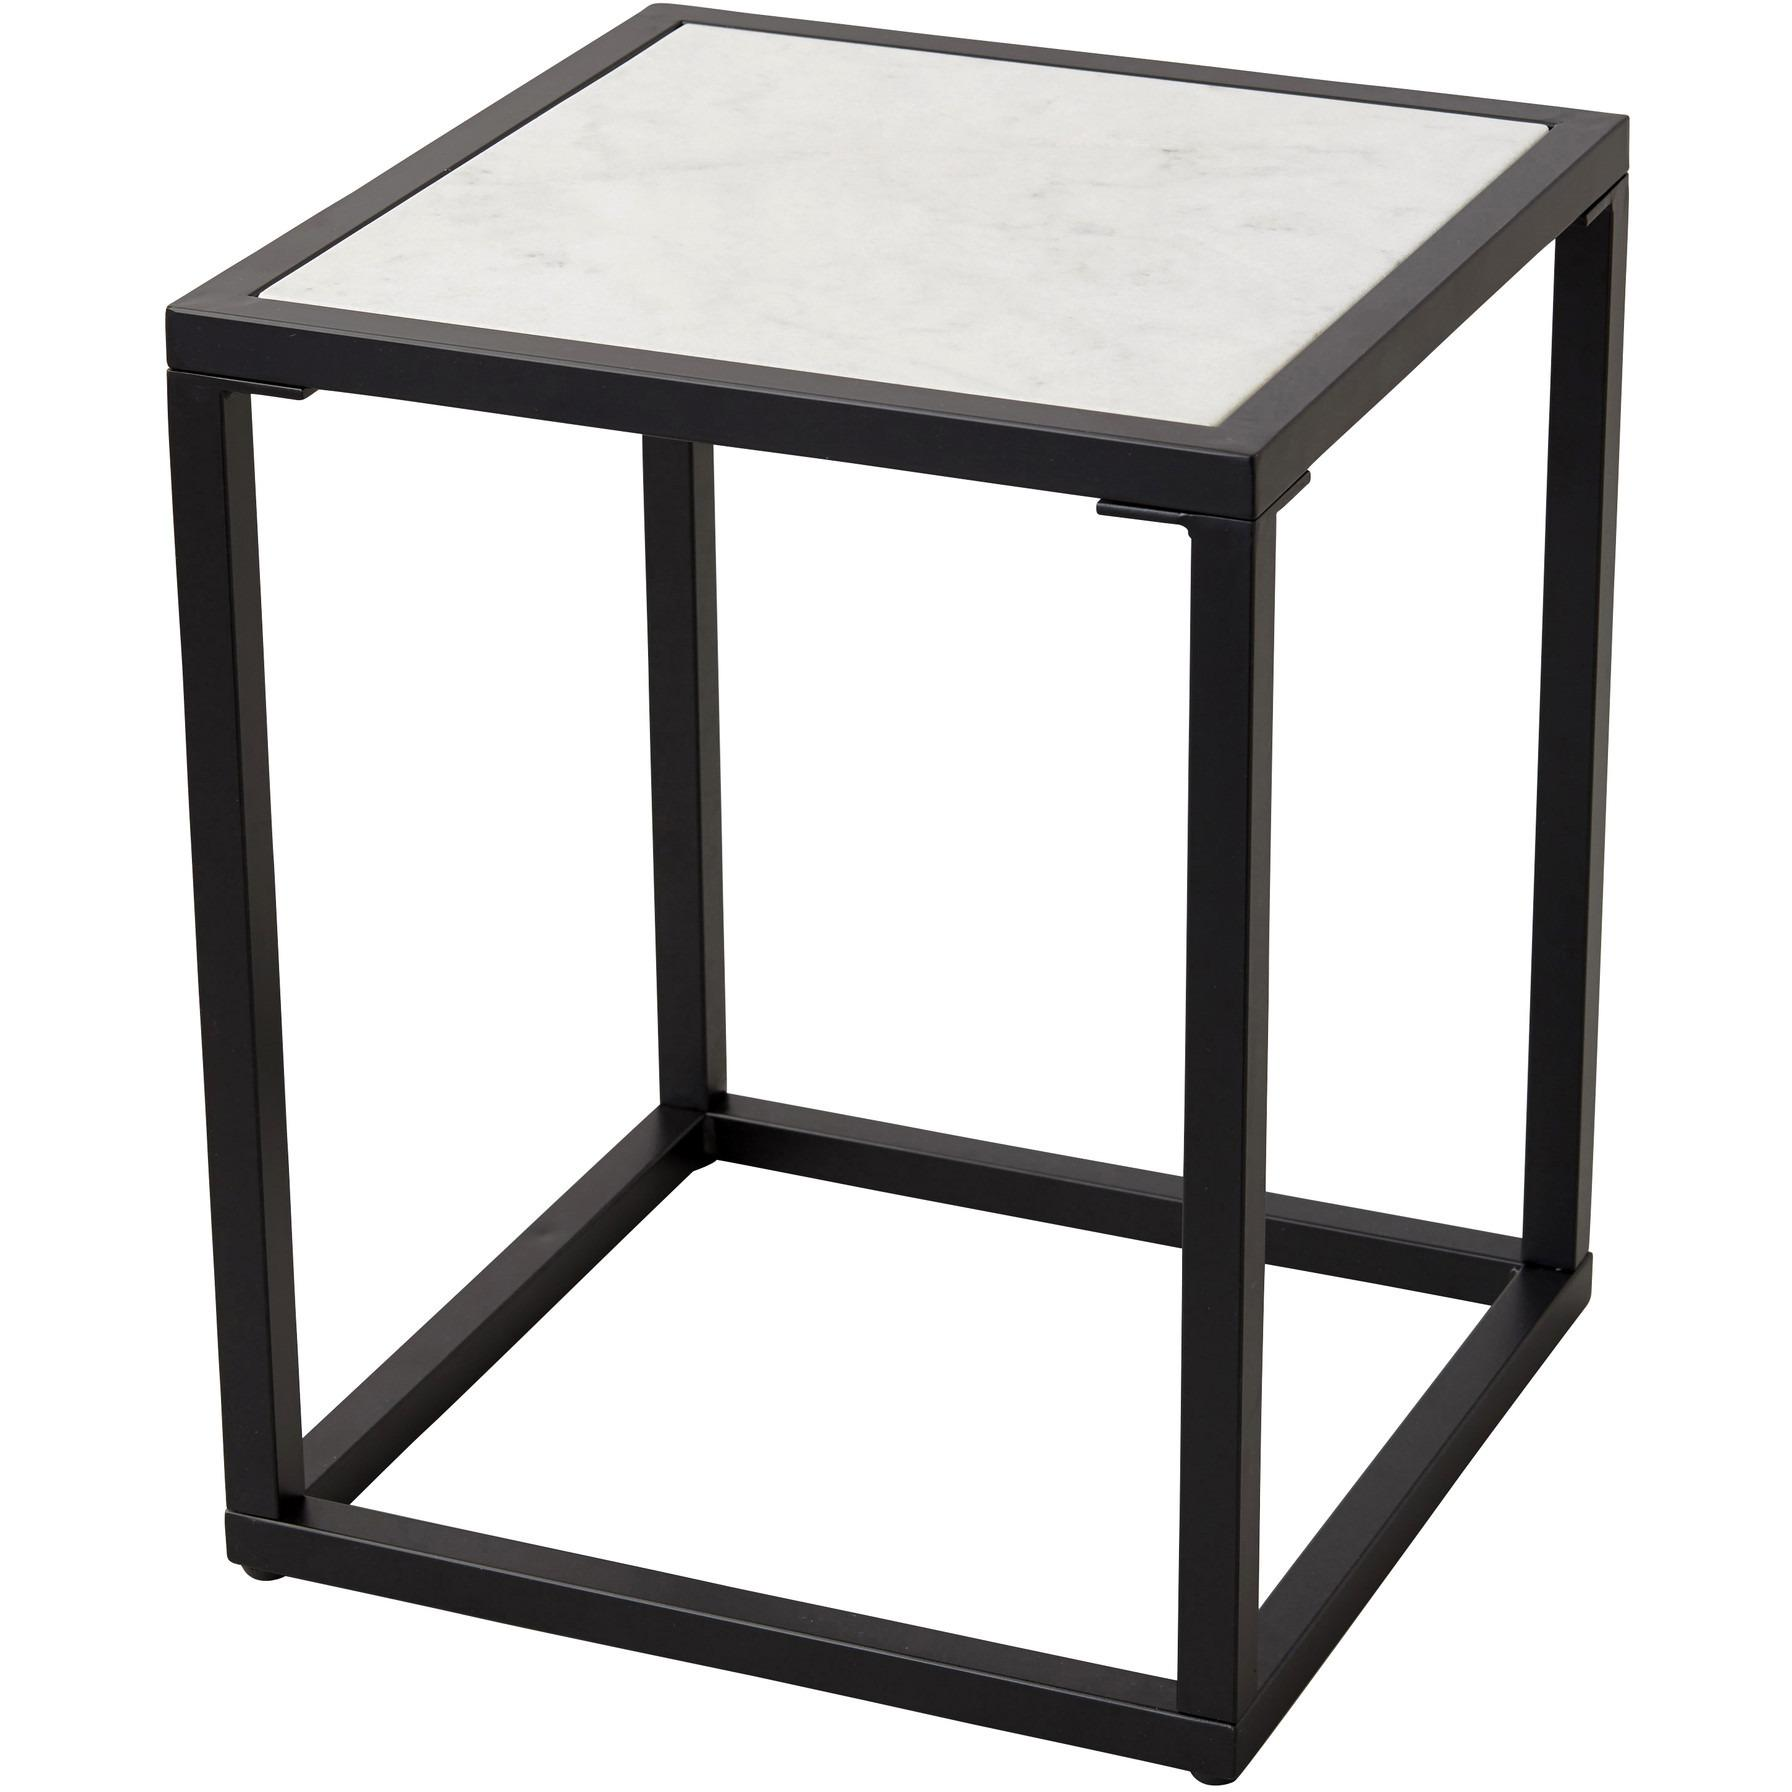 nico marble accent table maissone qktb white unique round coffee tables outdoor furniture sets cloth tablecloths folding homemade end pub height kitchen villa unfinished pine top